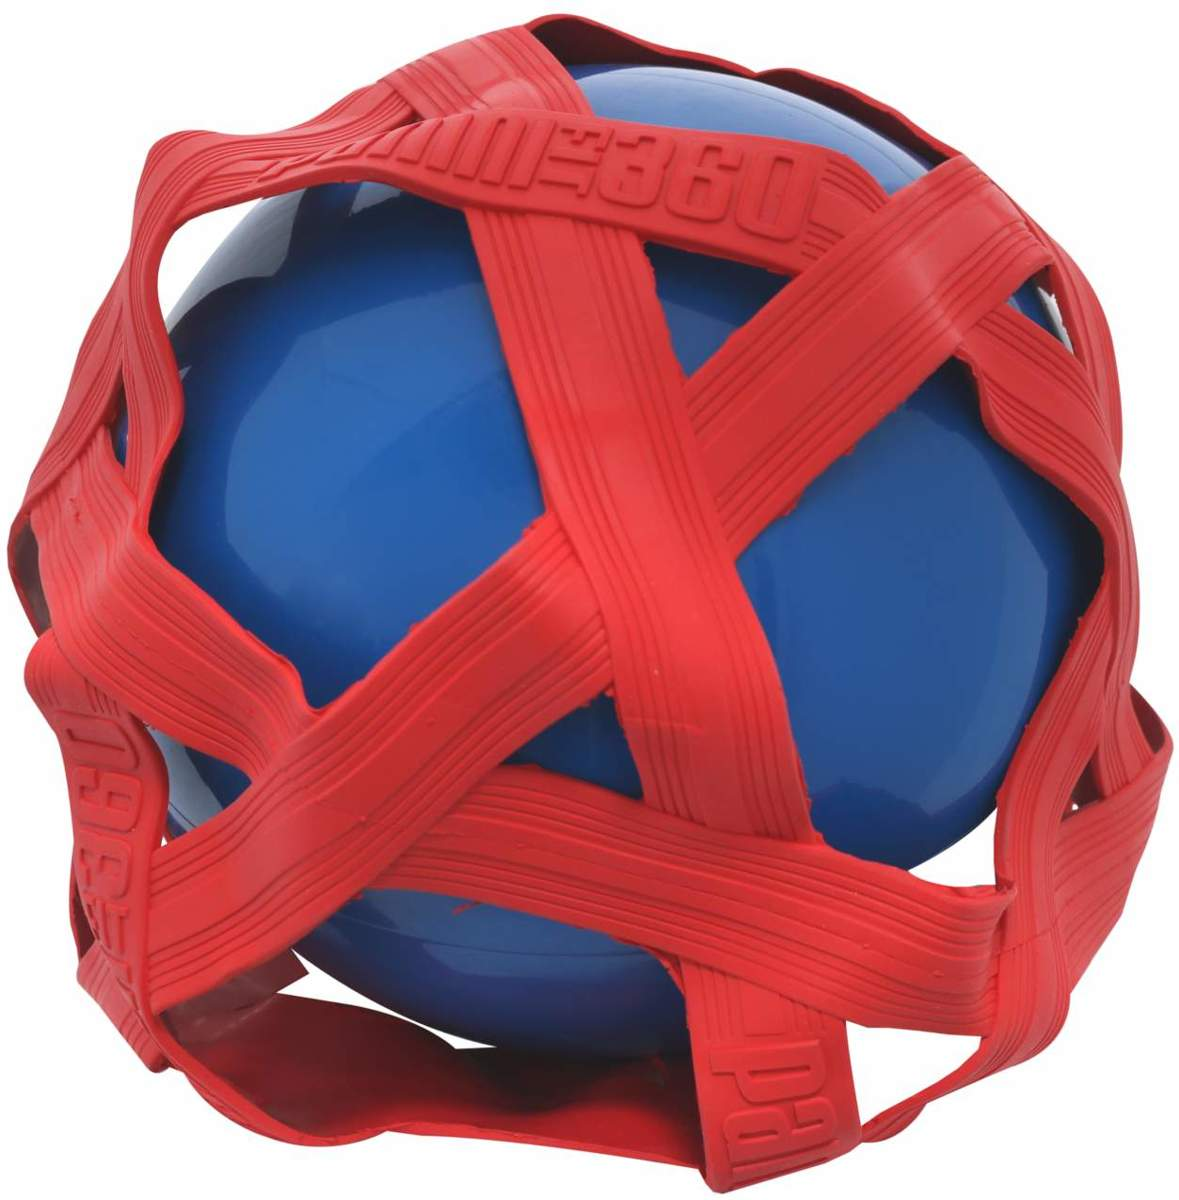 Crossball | Grip bal |   | Water Speelbal